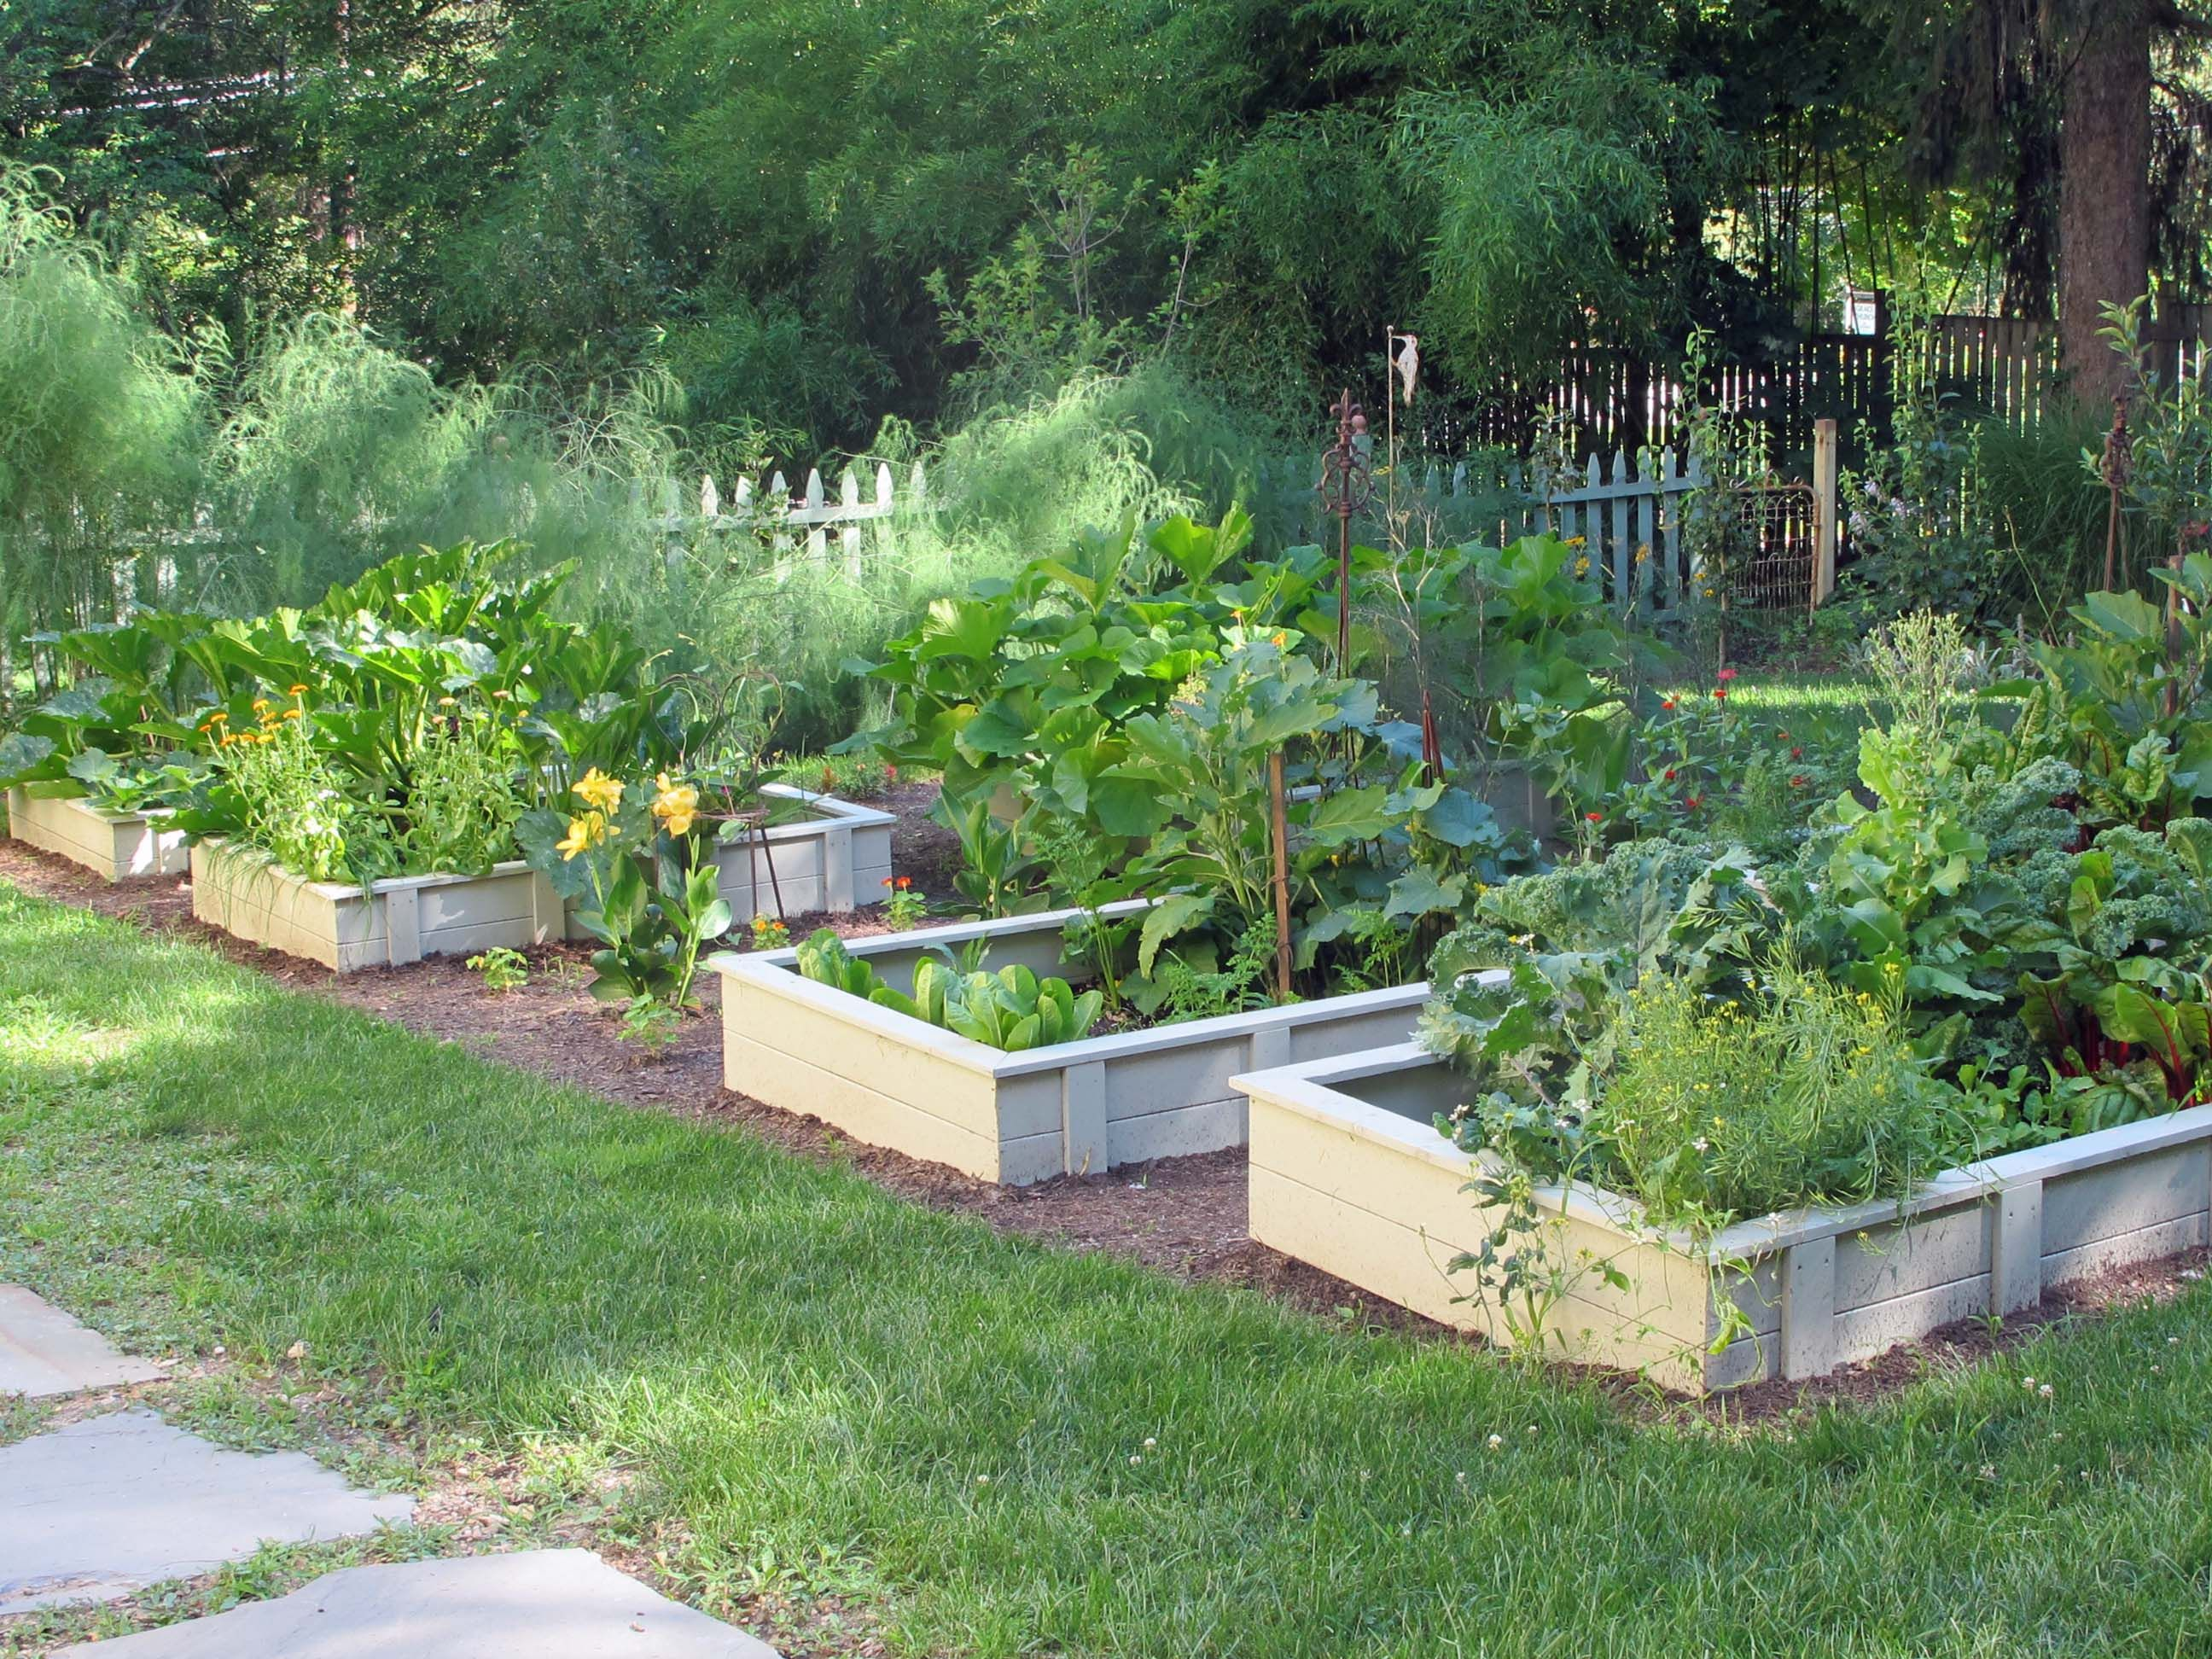 Raised vegetable garden design ideas veg garden beds for Raised vegetable garden